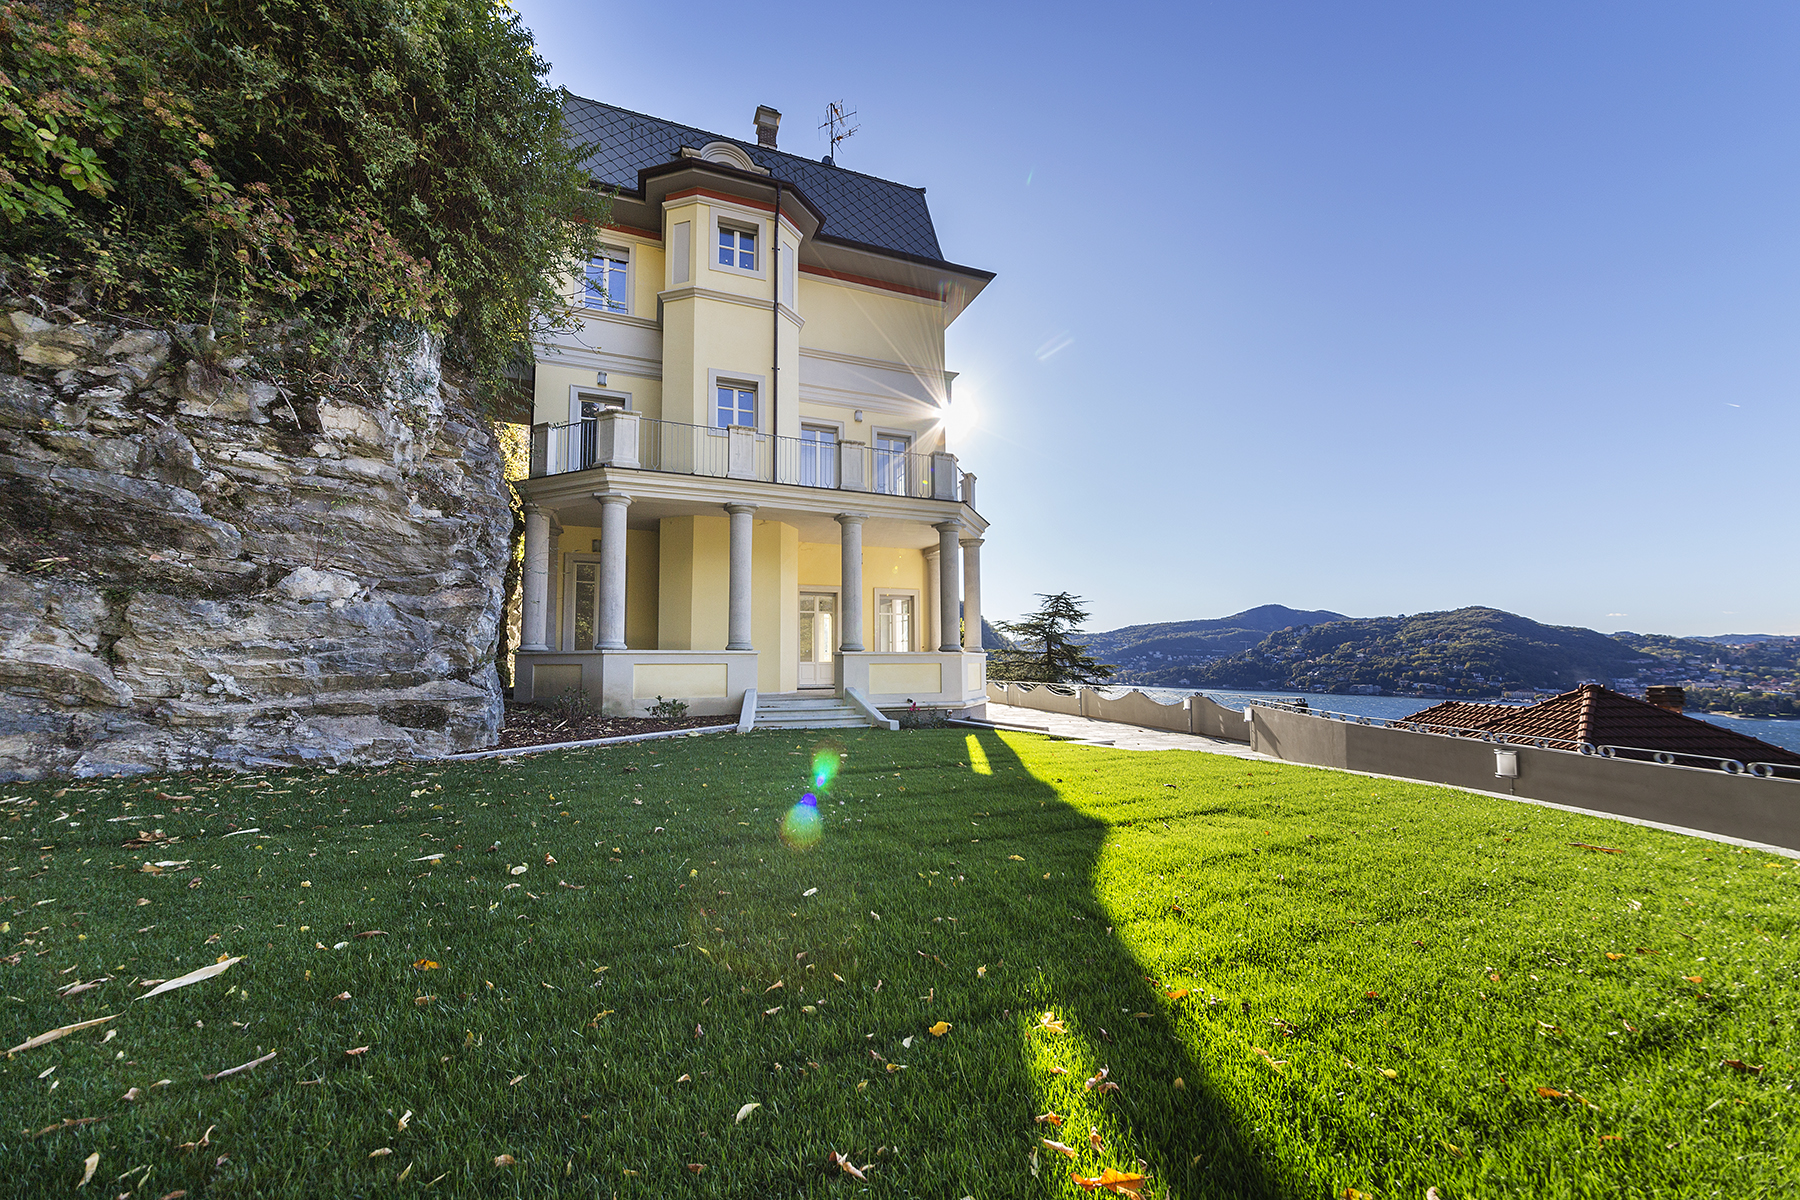 Apartment for Sale at Apartment with private garden in historical villa Blevio, Como, Italy